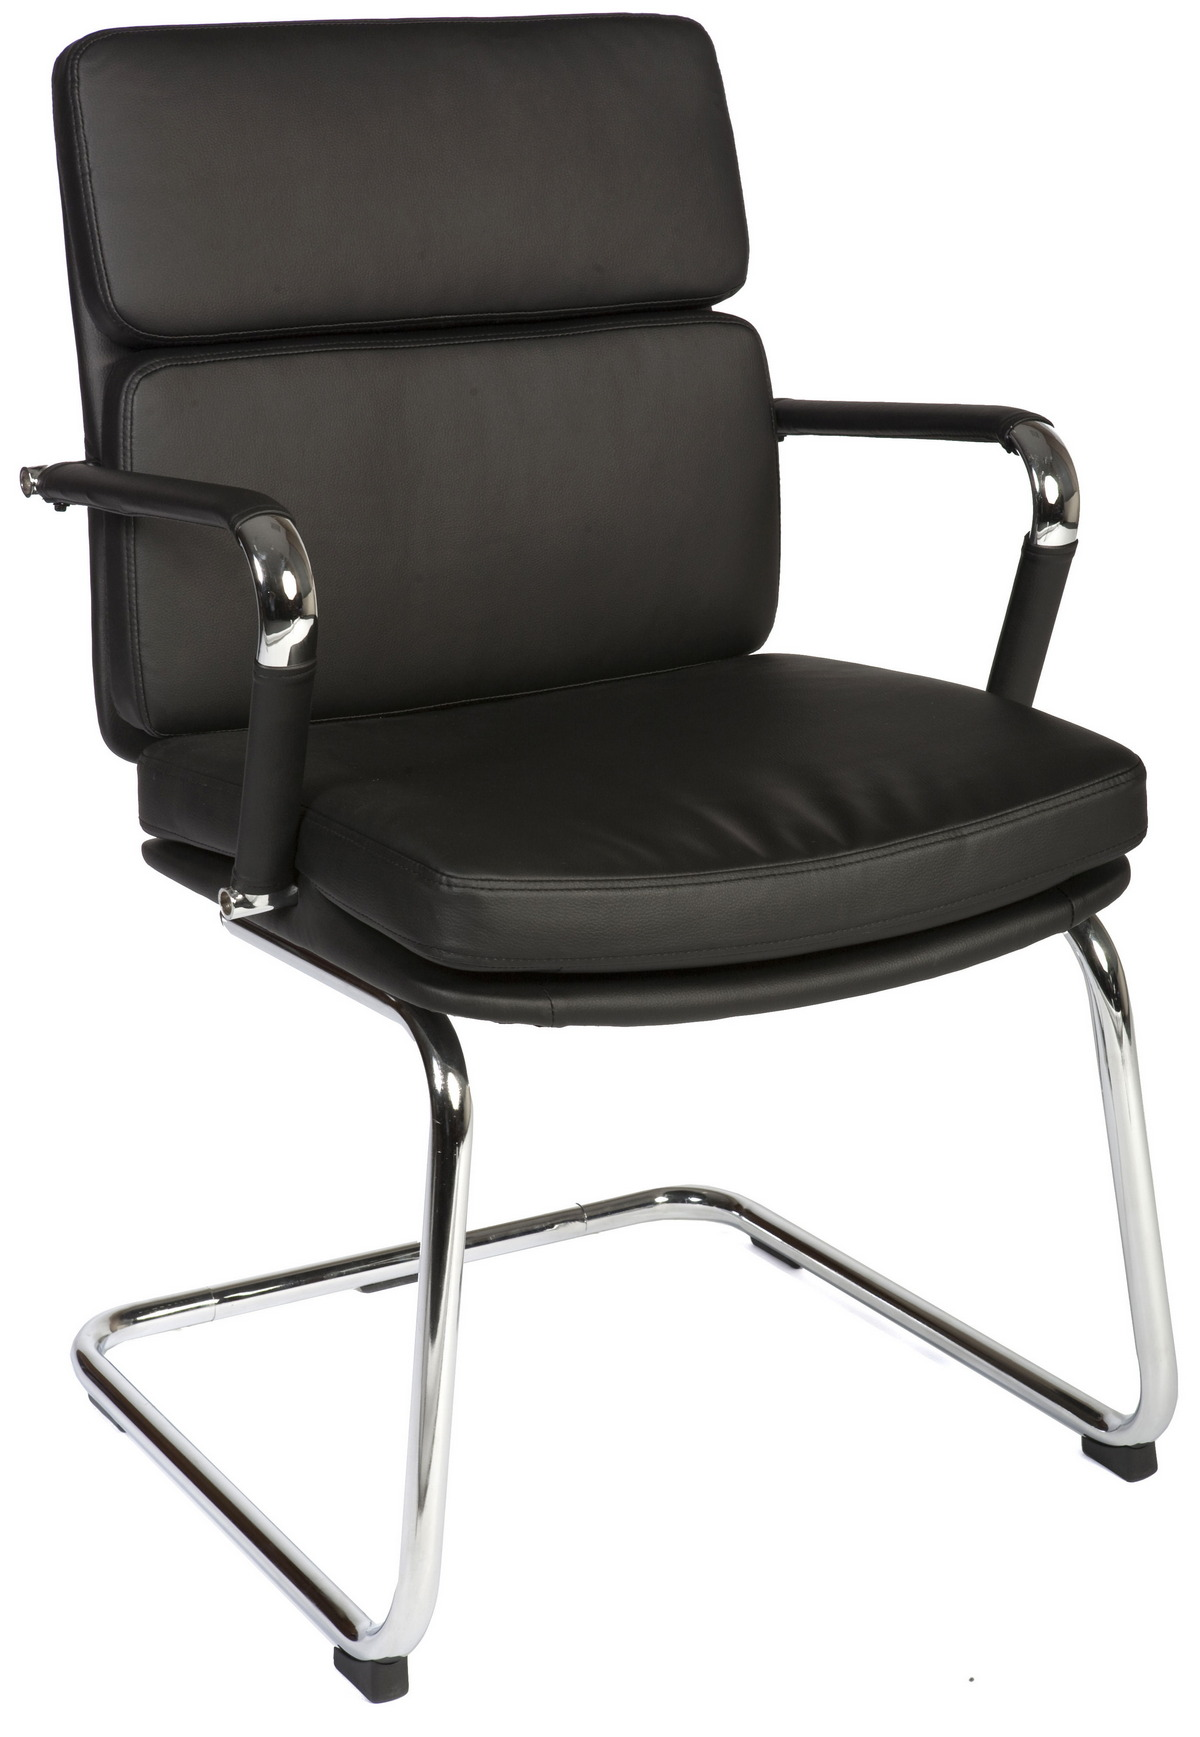 Budget Eames style padded faux leather cantilever chair Black